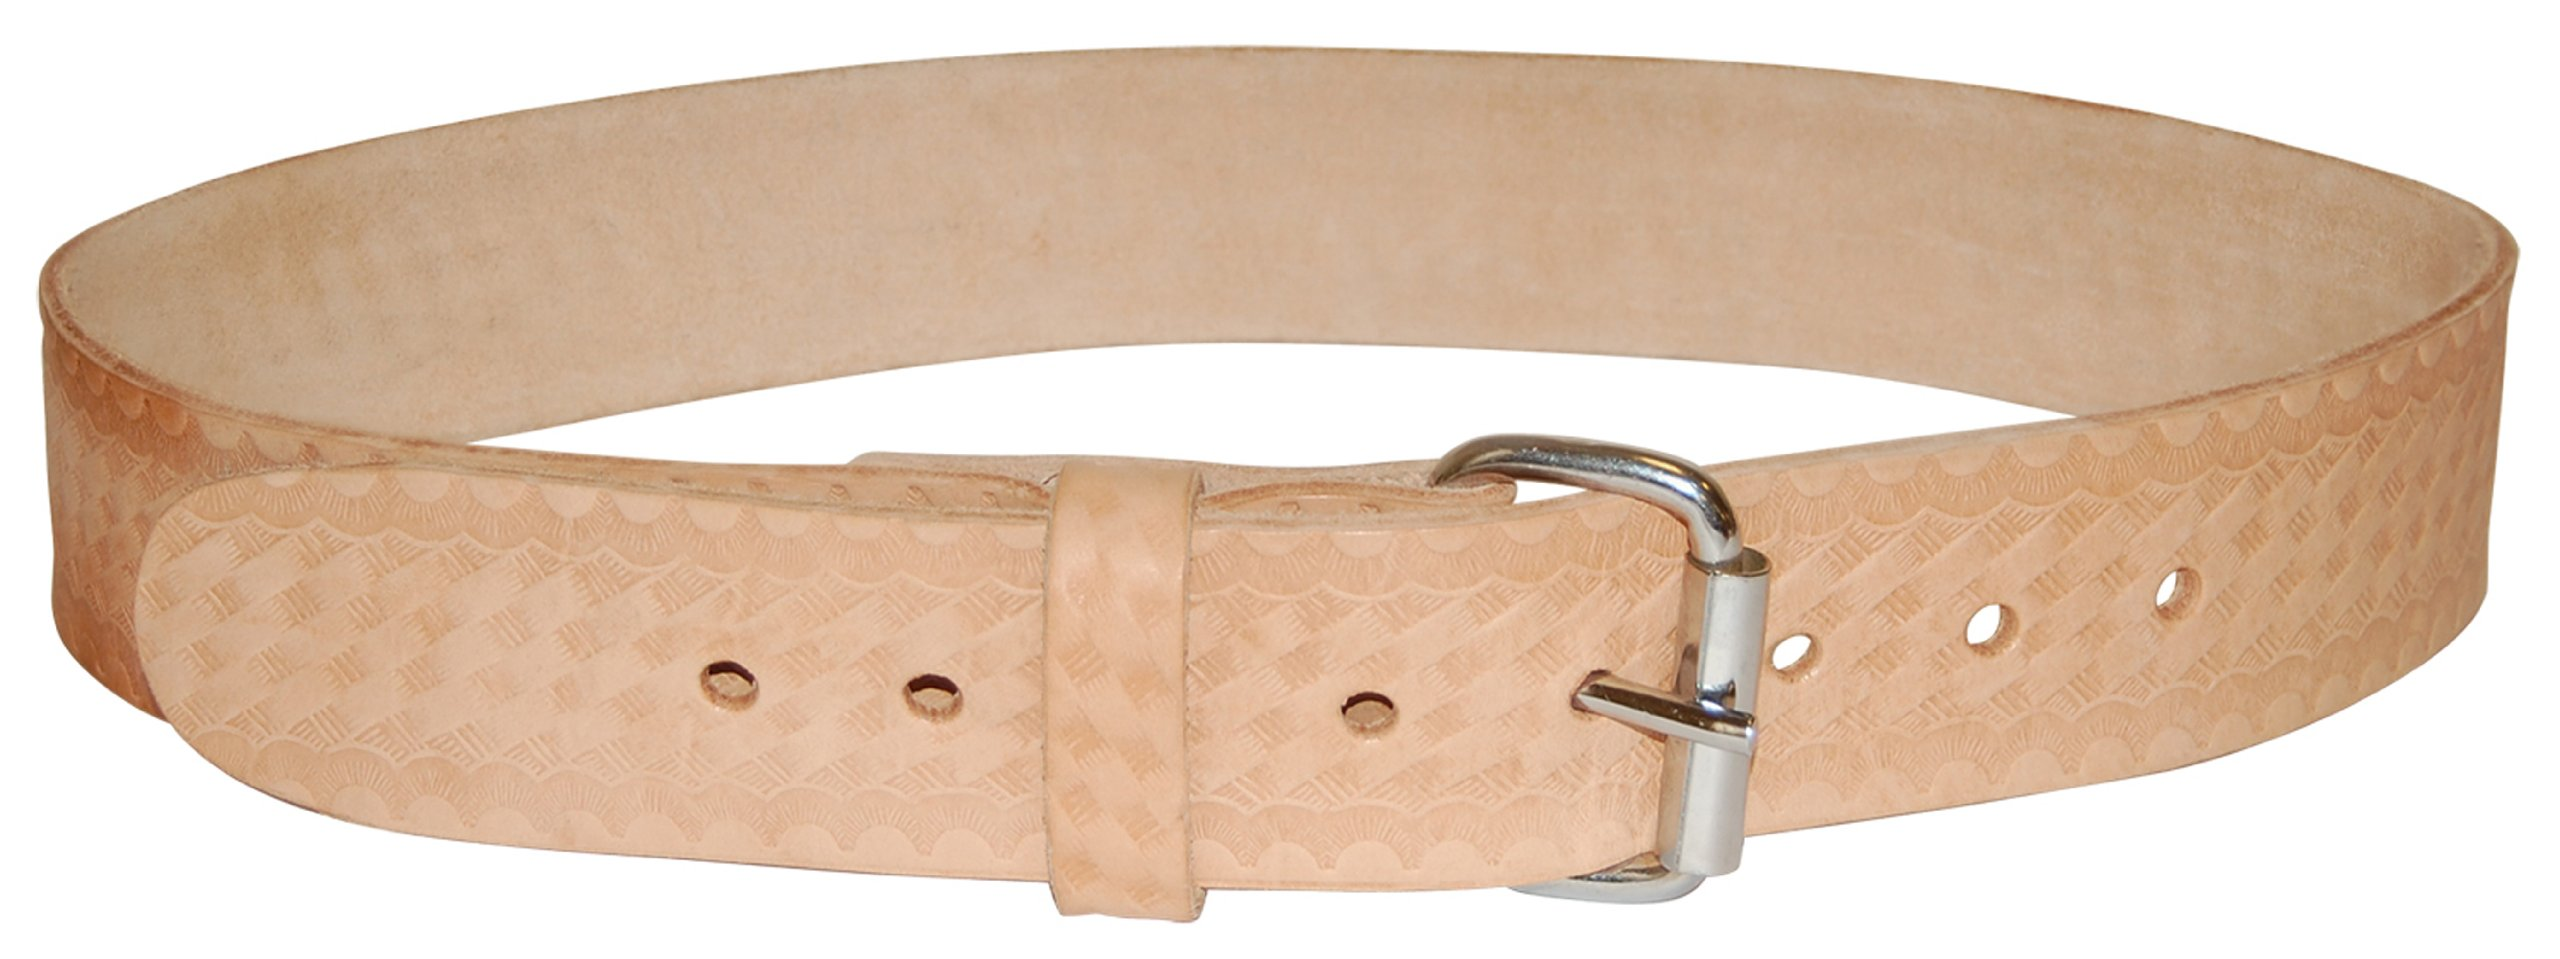 Bucket Boss 55134 Top Grain Leather Work Belt 1.75-Inch